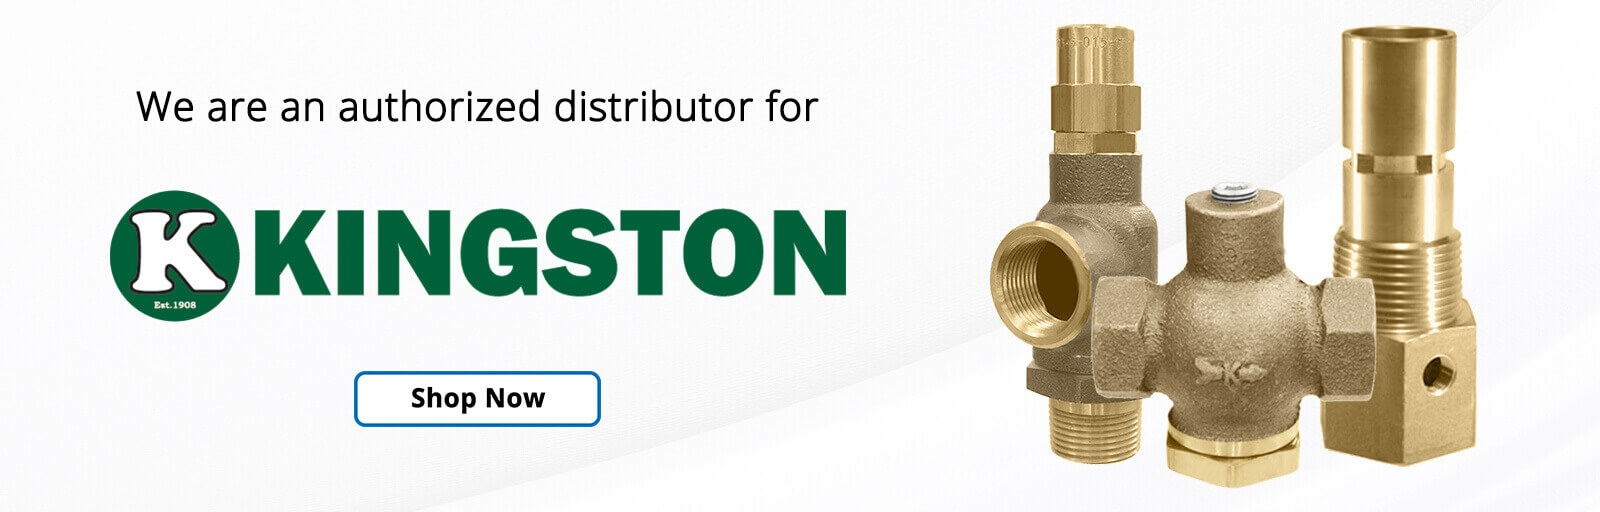 Radwell is an authorized distributor for Kingston